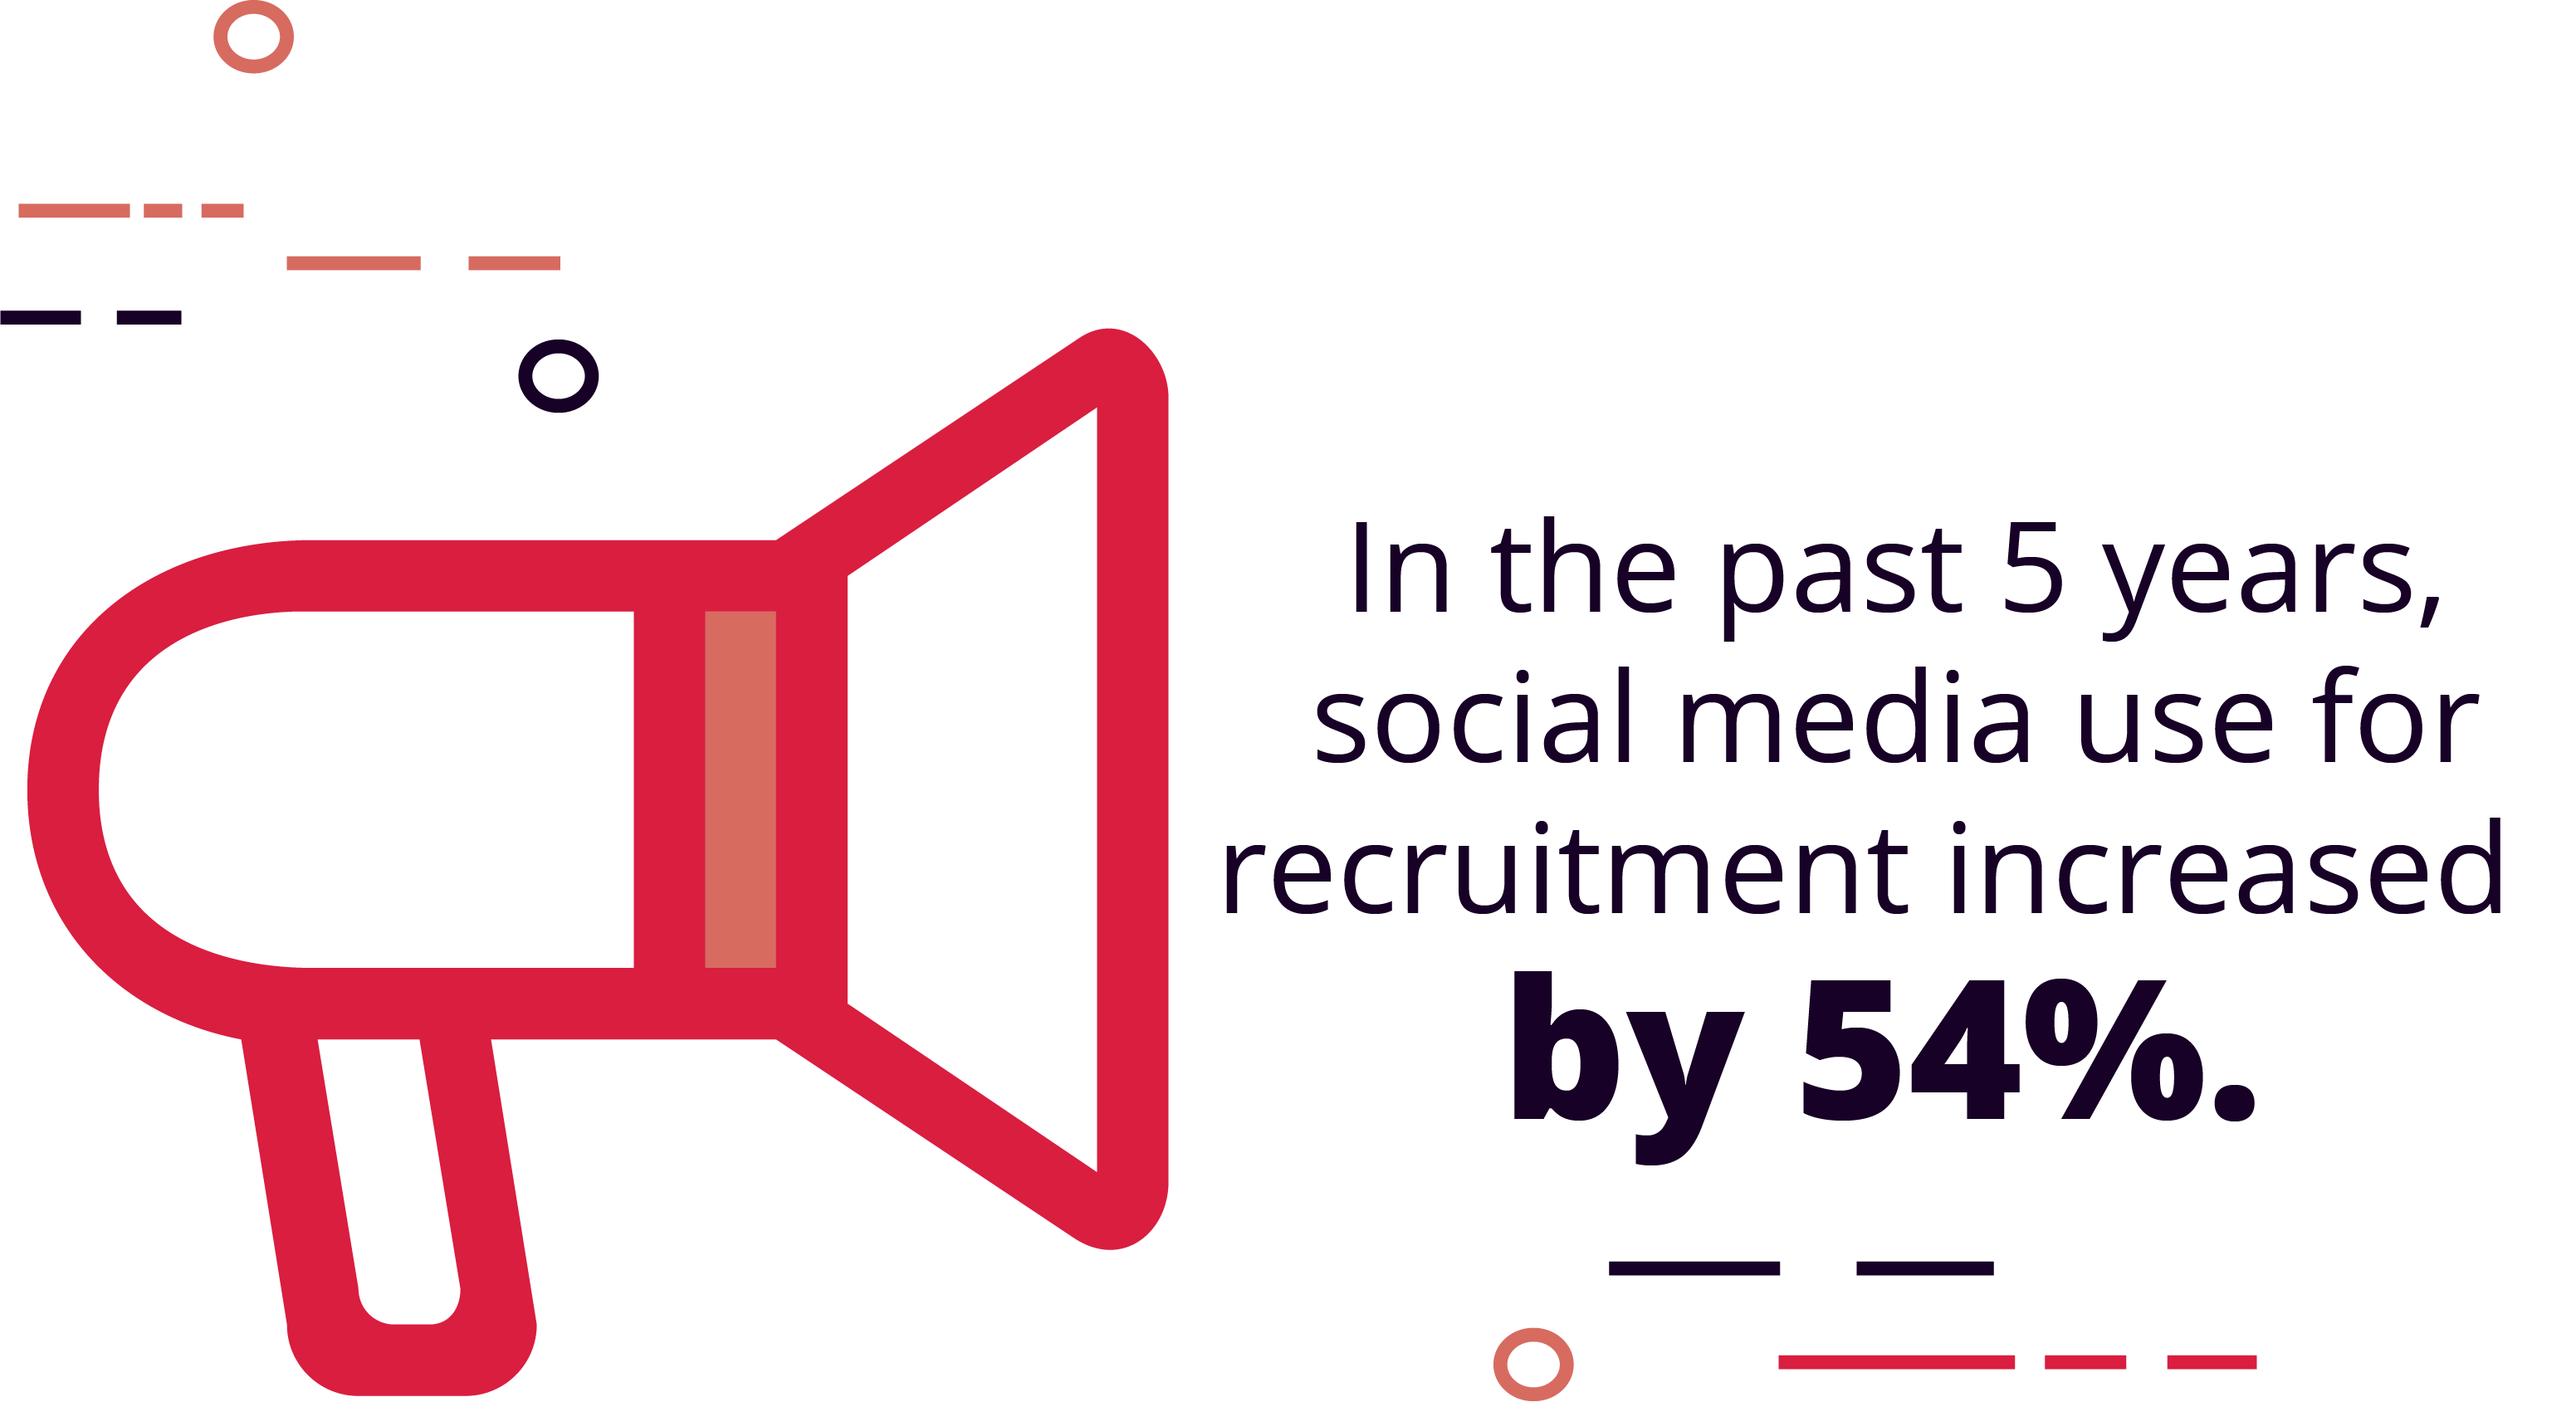 Social media use for recruiting has increased by 54% in the past 5 years